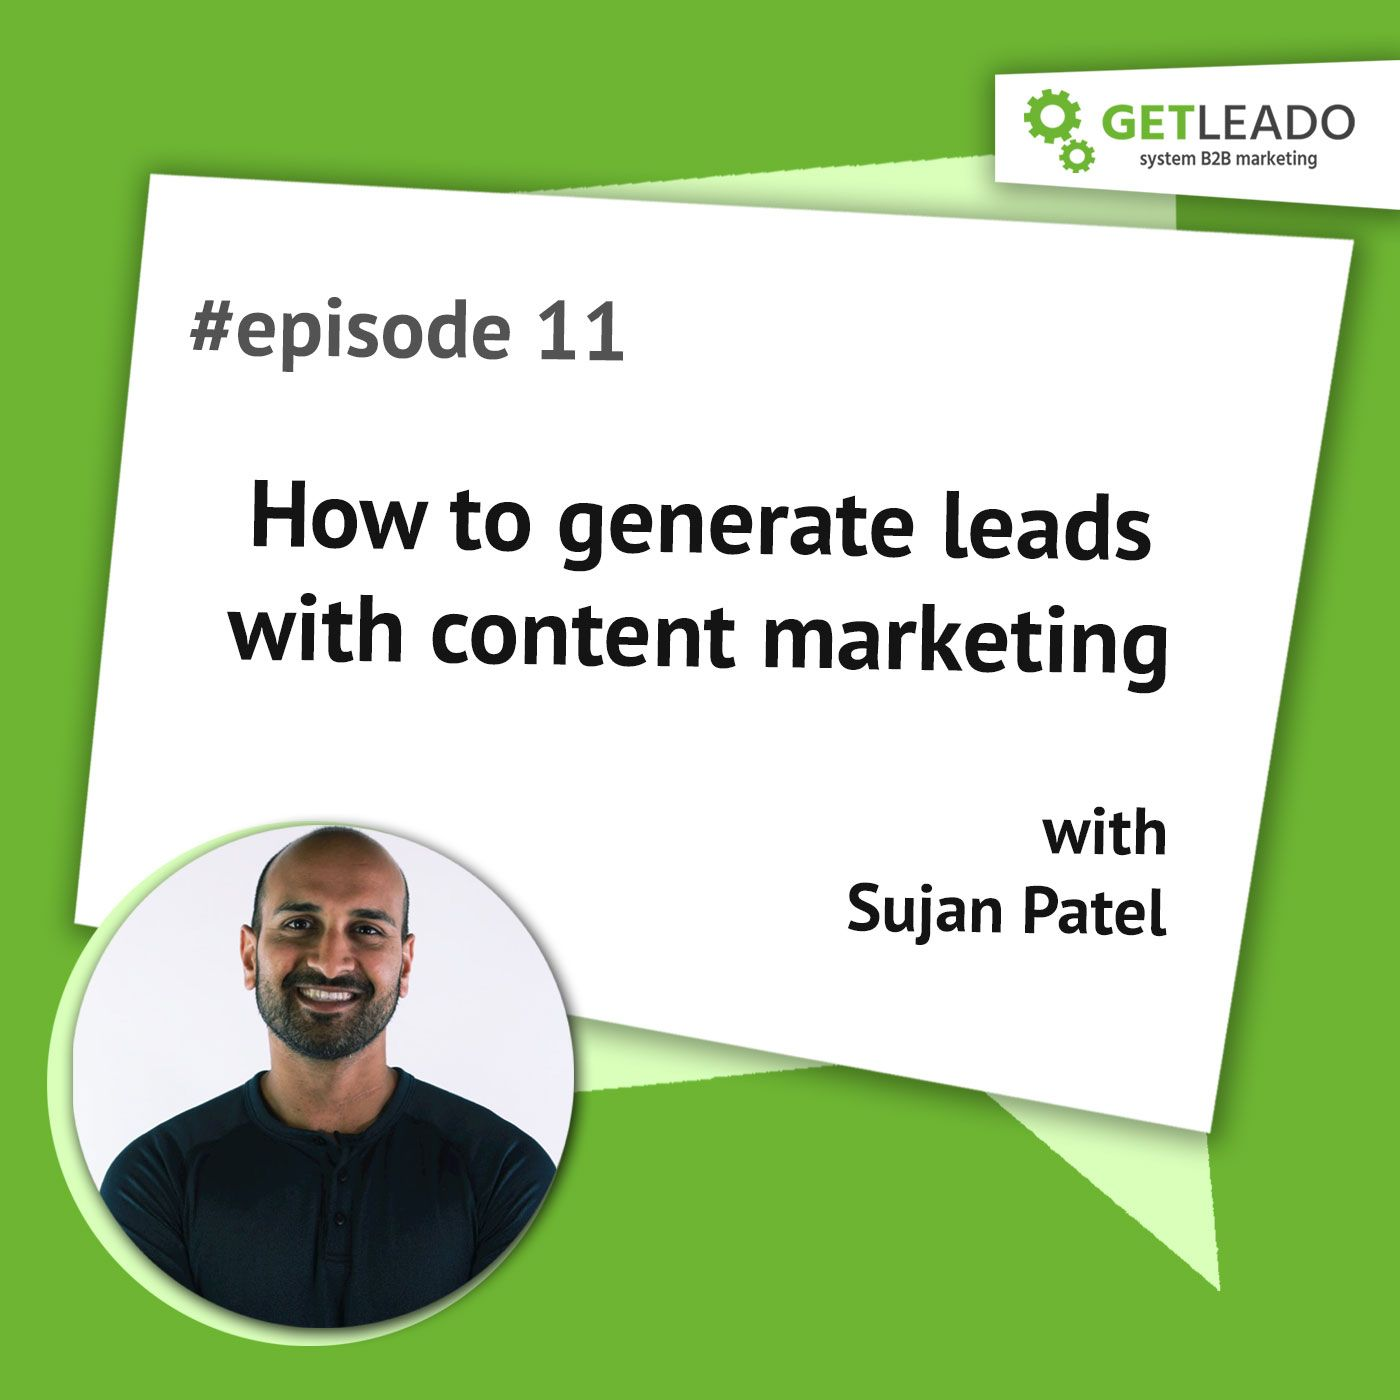 Episode 11. How to generate leads with inbound marketing with Sujan Patel